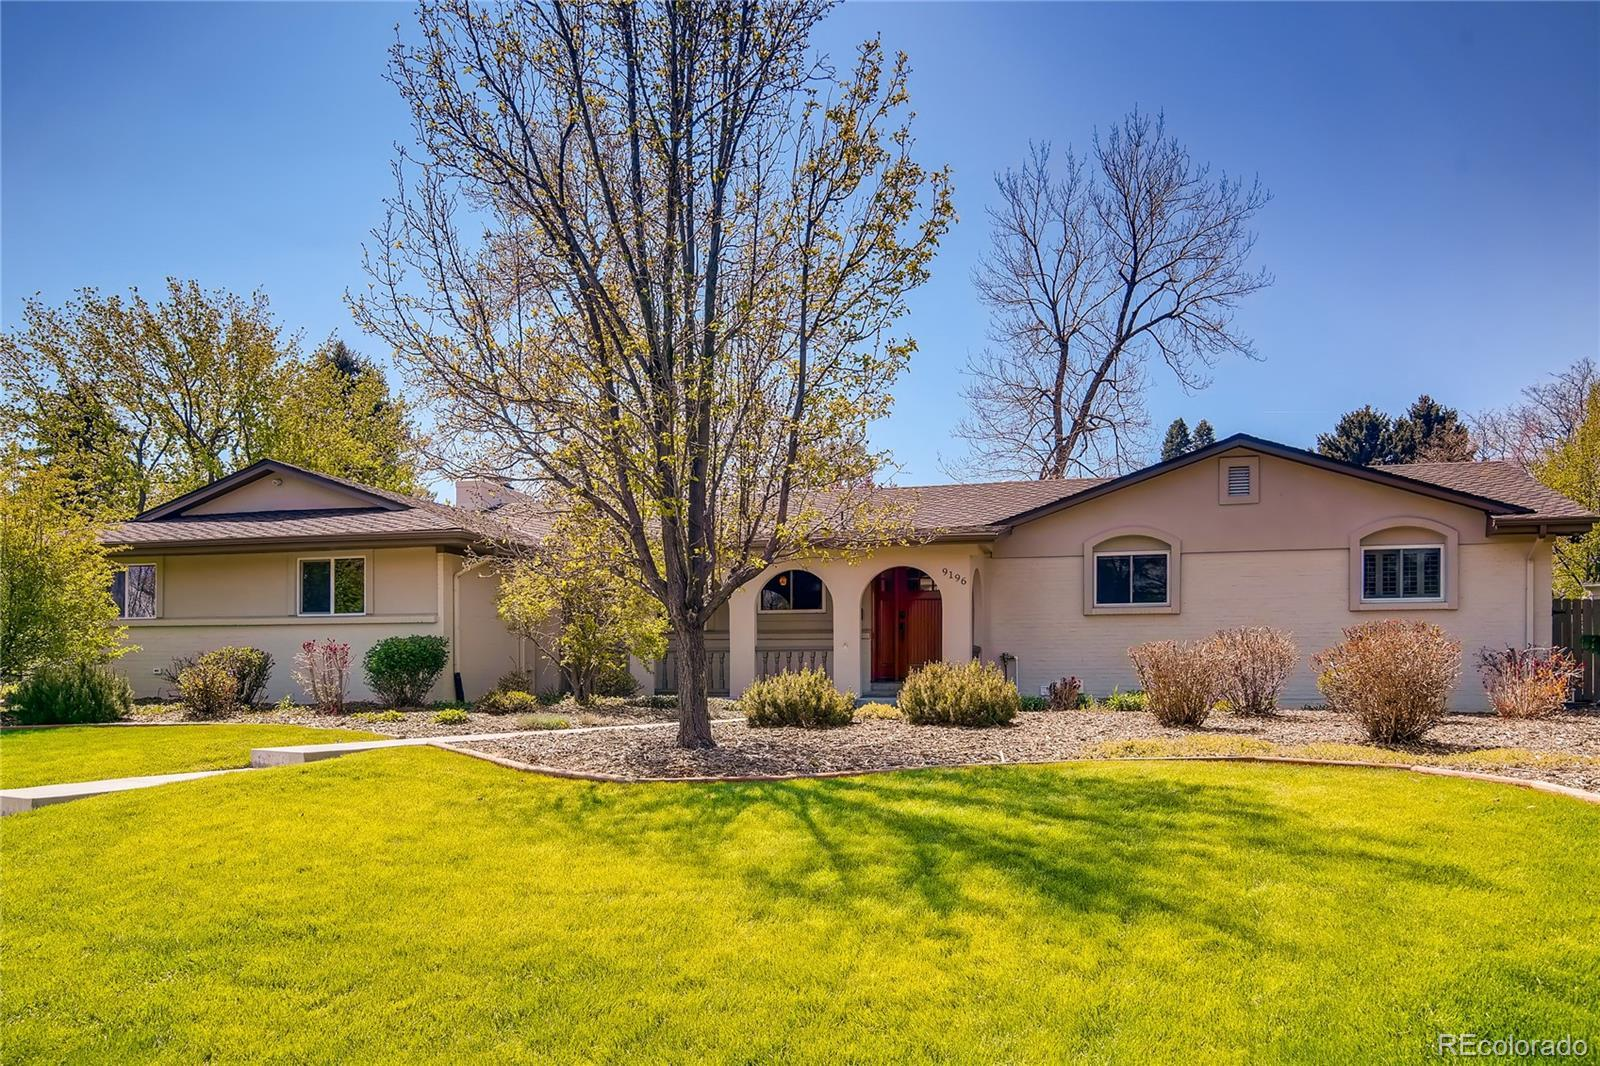 9196 E Stanford Place, Greenwood Village, CO 80111 - #: 1714557